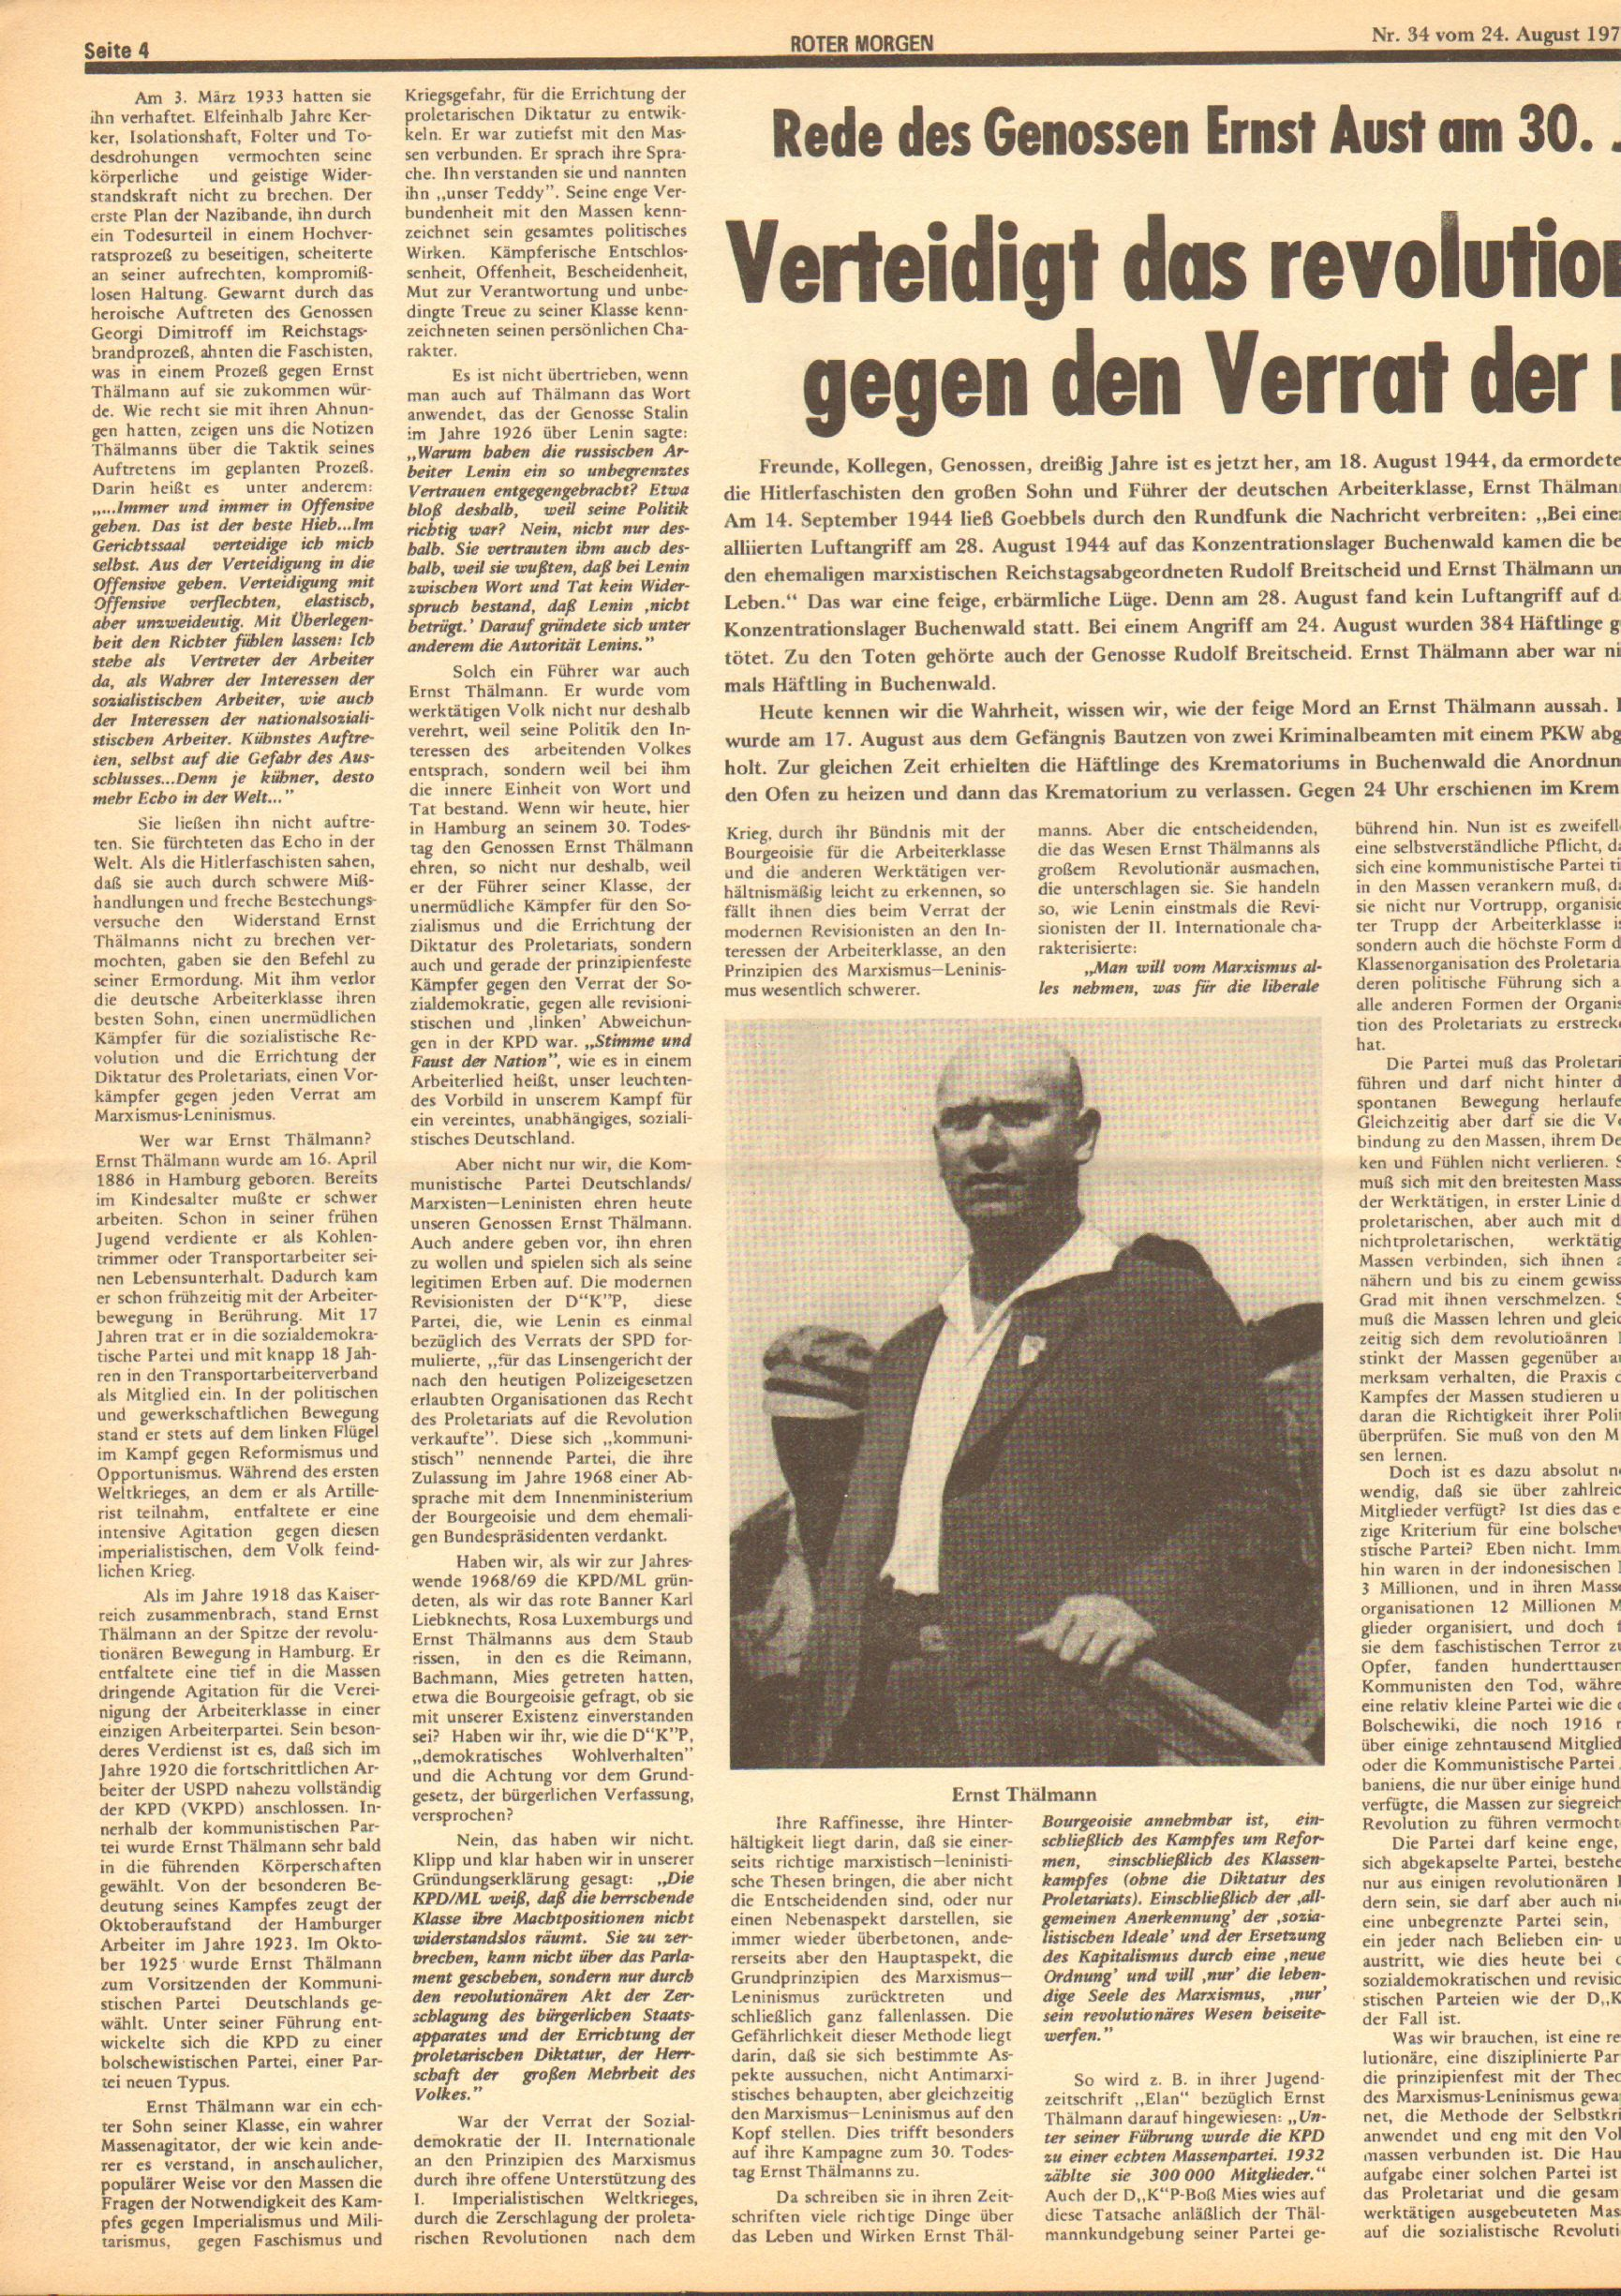 Roter Morgen, 8. Jg., 24. August 1974, Nr. 34, Seite 4